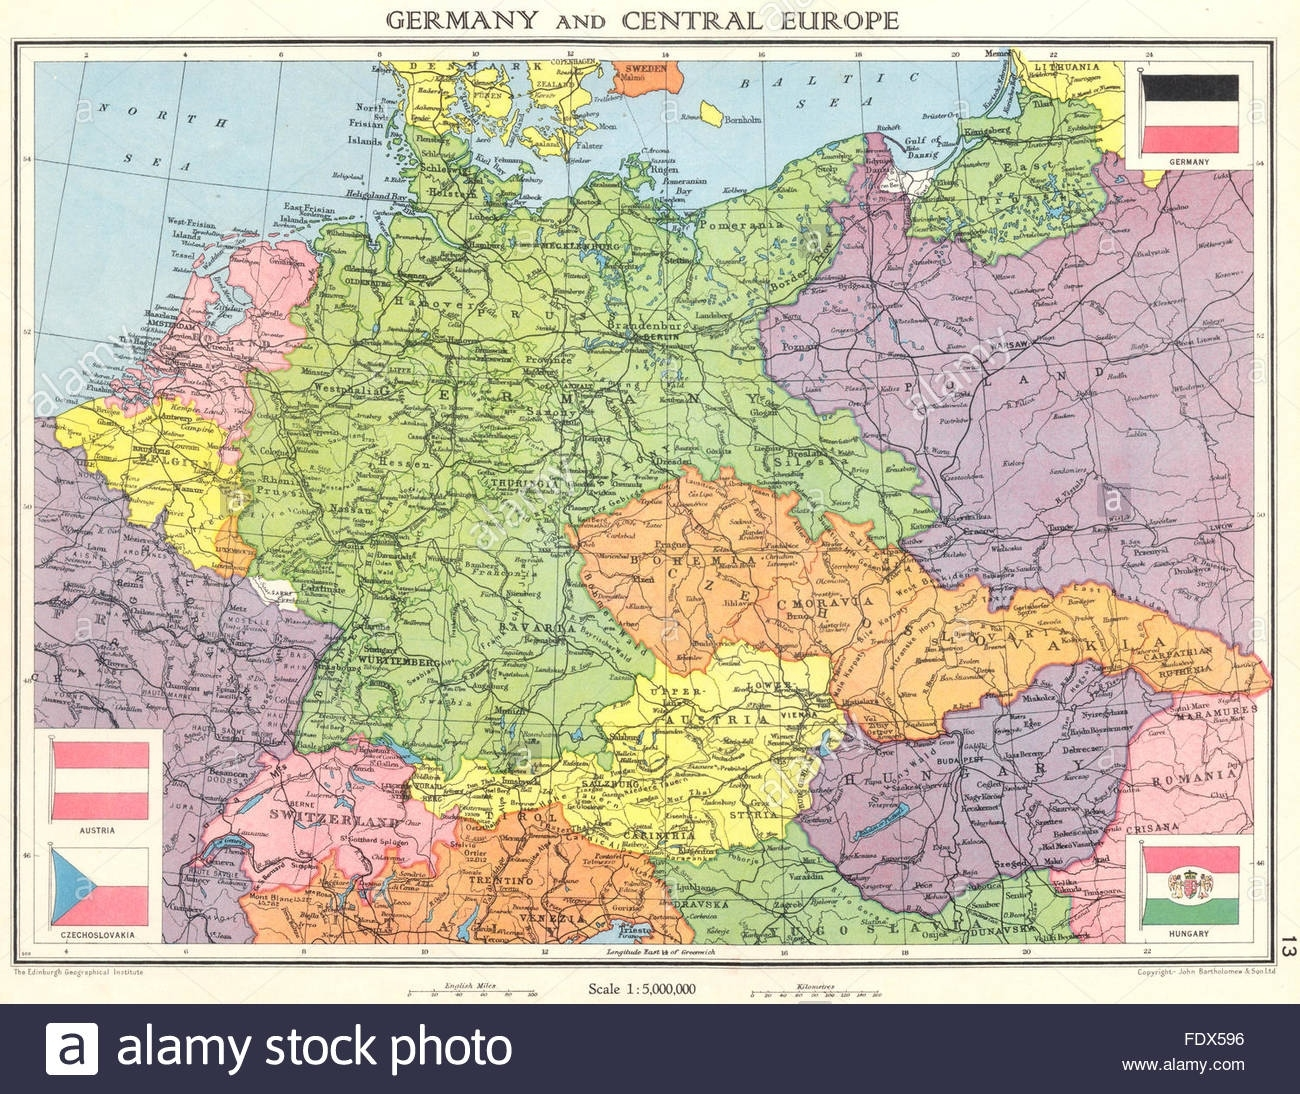 Germany & Central Europe: Shortly Before World War 2. Saarland, 1938 pertaining to Germany Map Before Ww1 And After